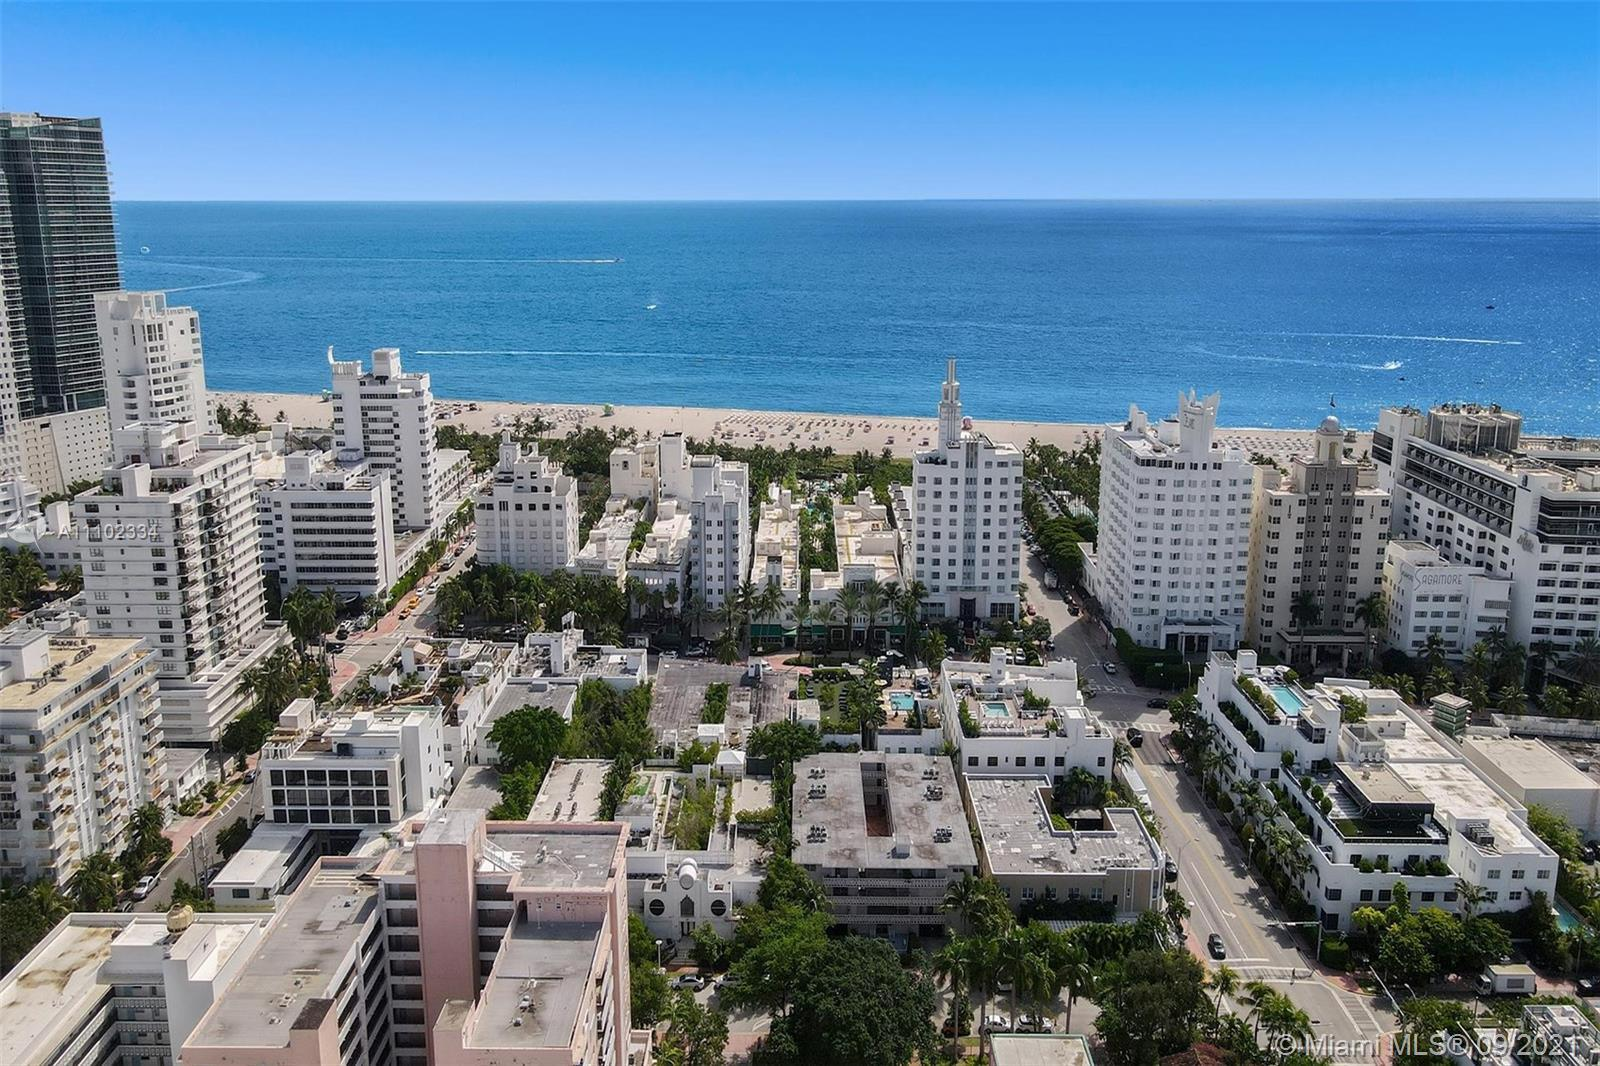 ***CALL LISTING AGENT DIRECTLY TO SEE IT: 786.355.1449*** MAGNIFICENT LOCATION in South beach, at j